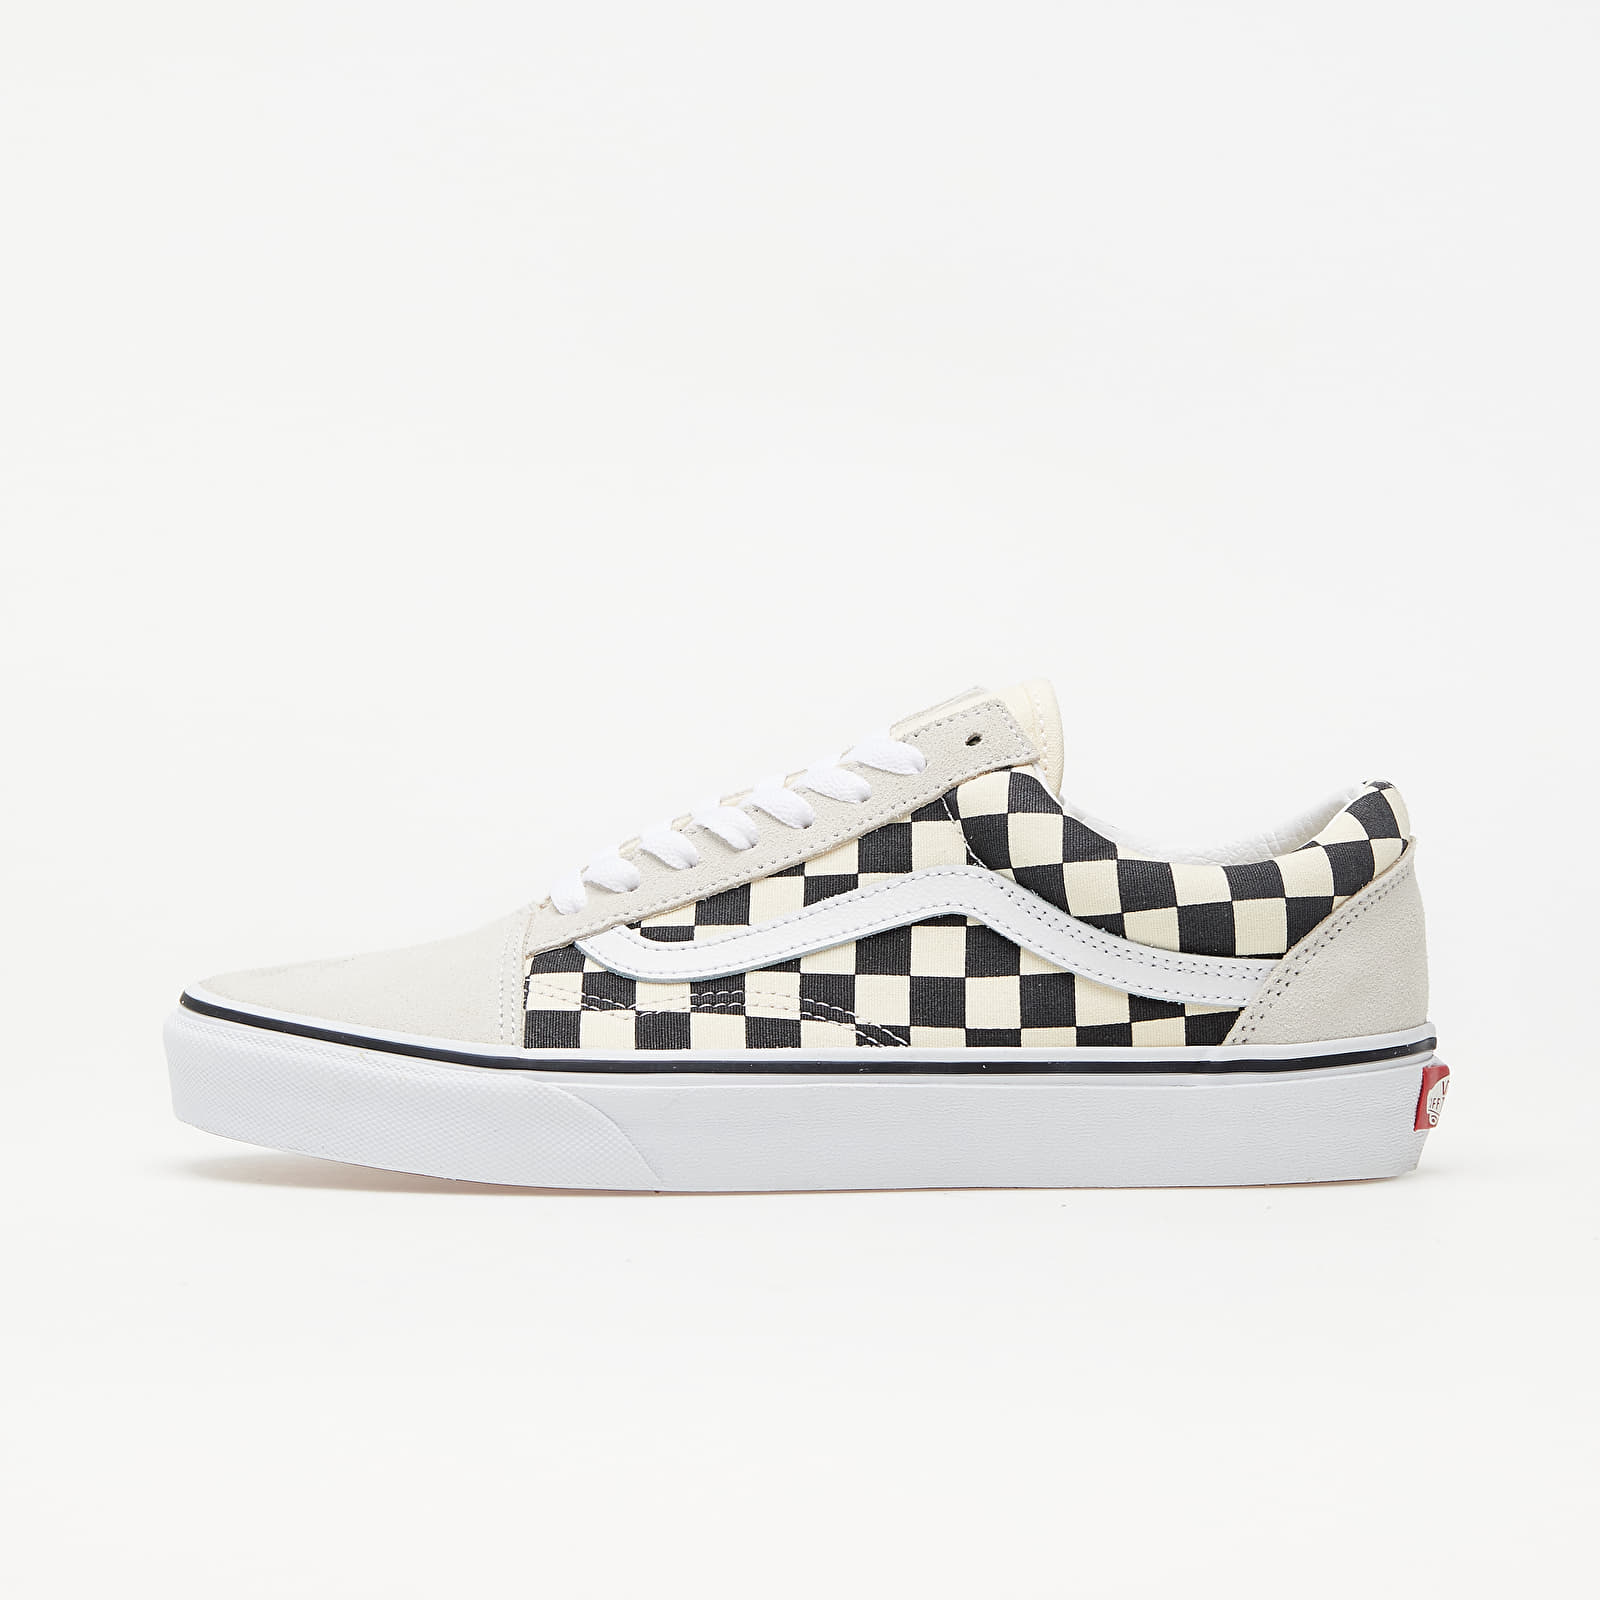 Vans Old Skool (Checkerboard) White/ Black EUR 34.5